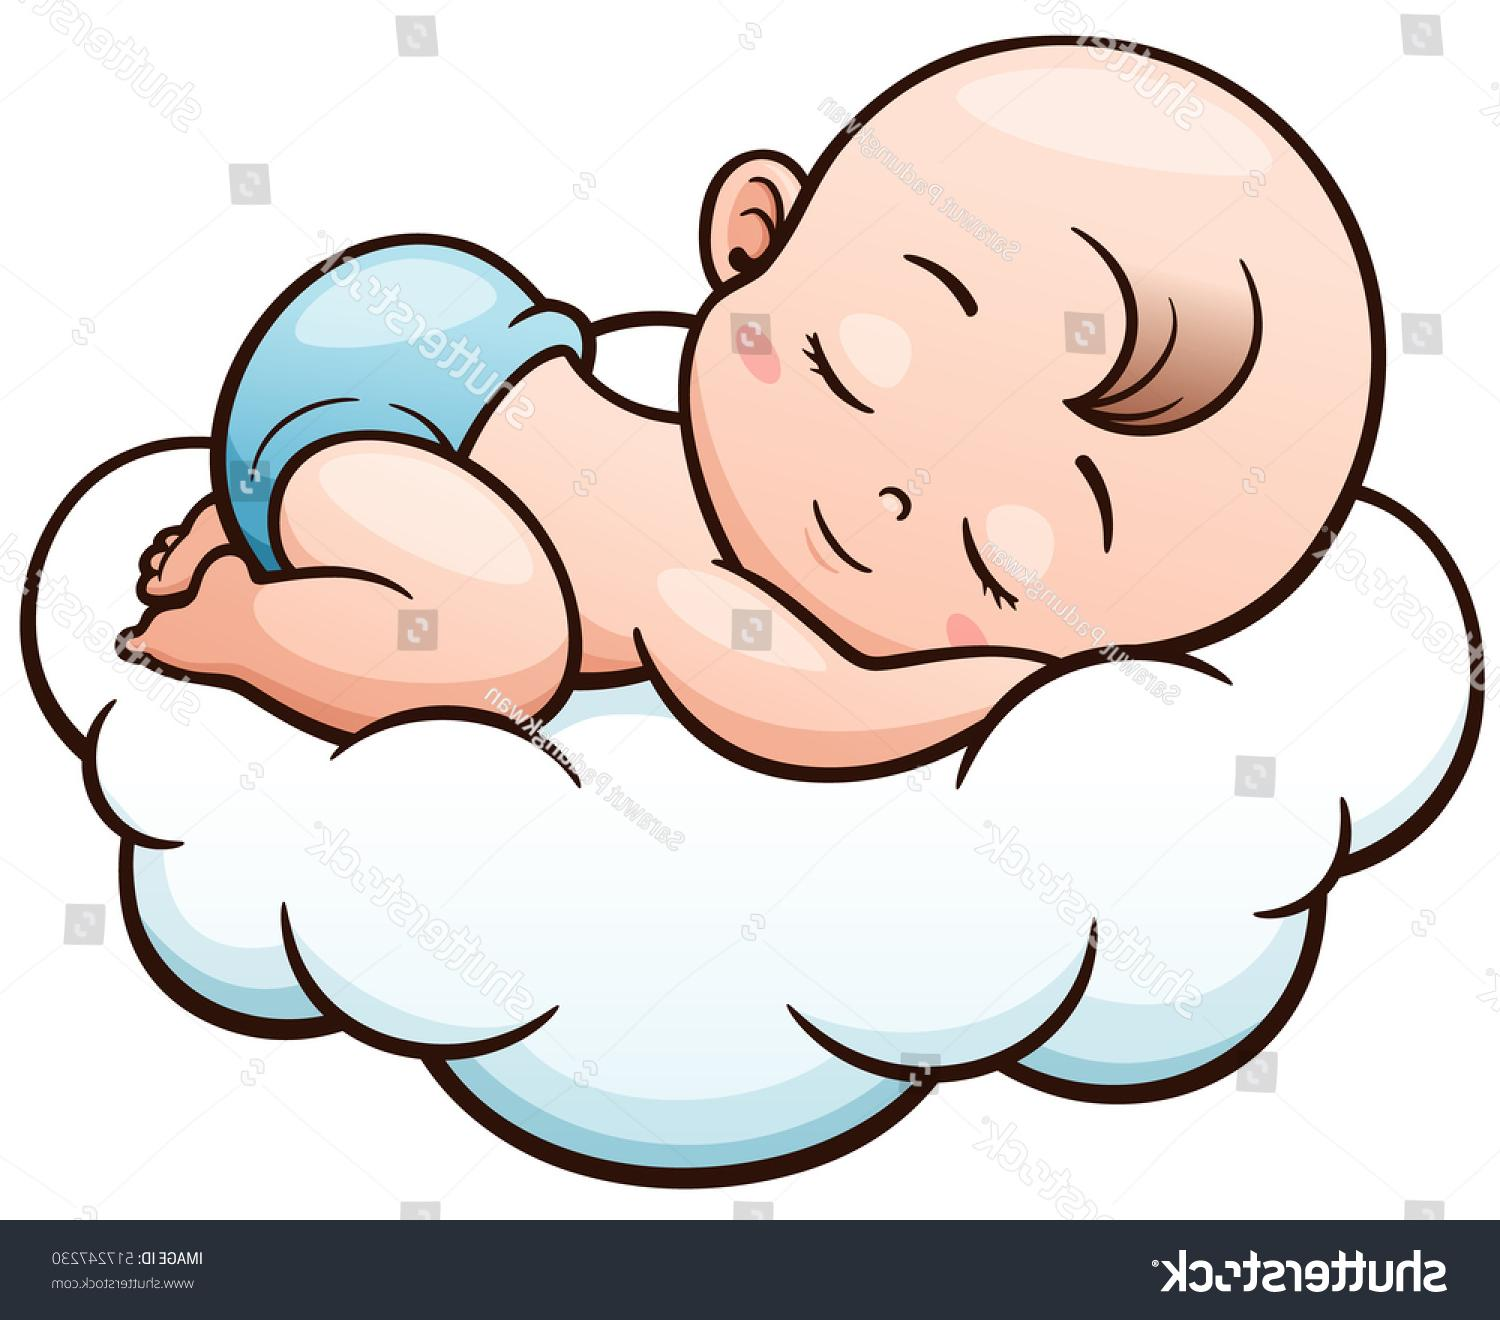 1500x1320 Top 10 Stock Vector Illustration Of Cartoon Baby Sleeping On Cloud